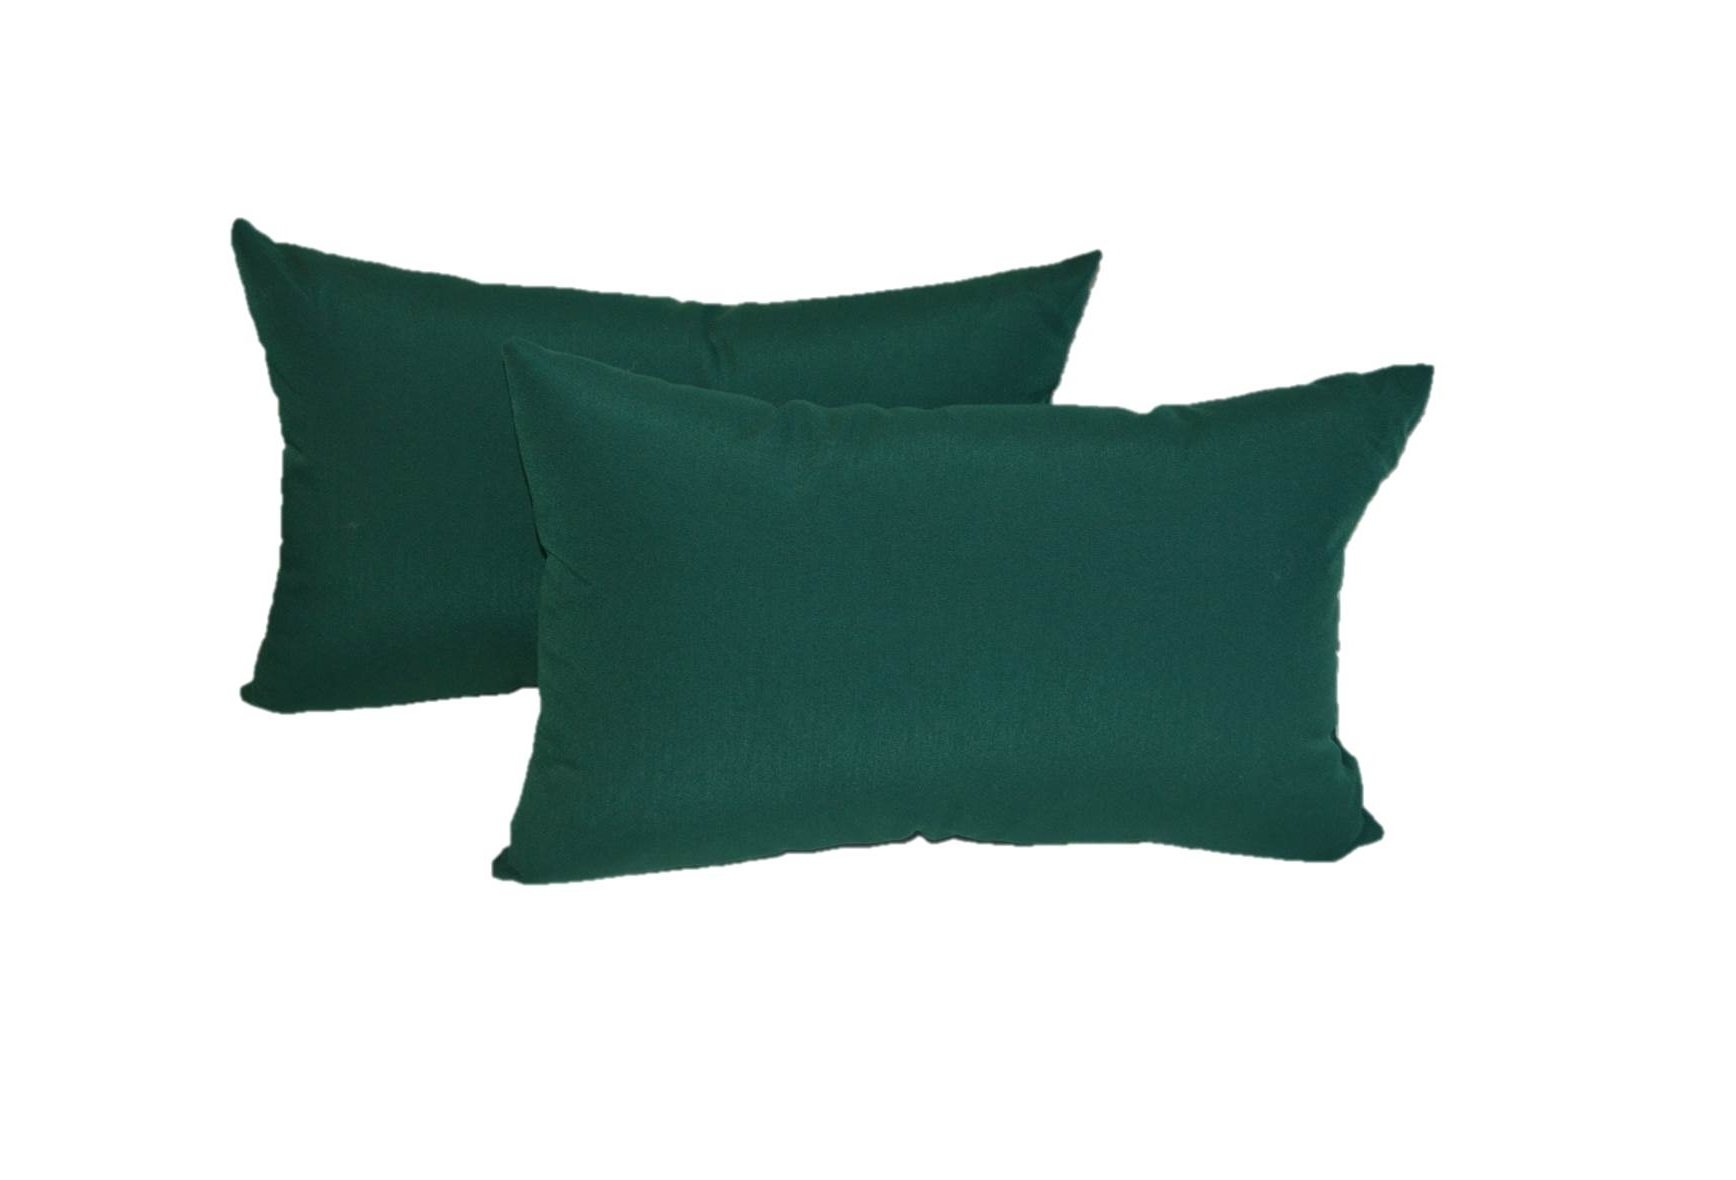 Set of 2 Indoor / Outdoor Decorative Lumbar / Rectangle Pillows - Solid Hunter / Forest Green Fabric - Choose Size (11'' x 19'')